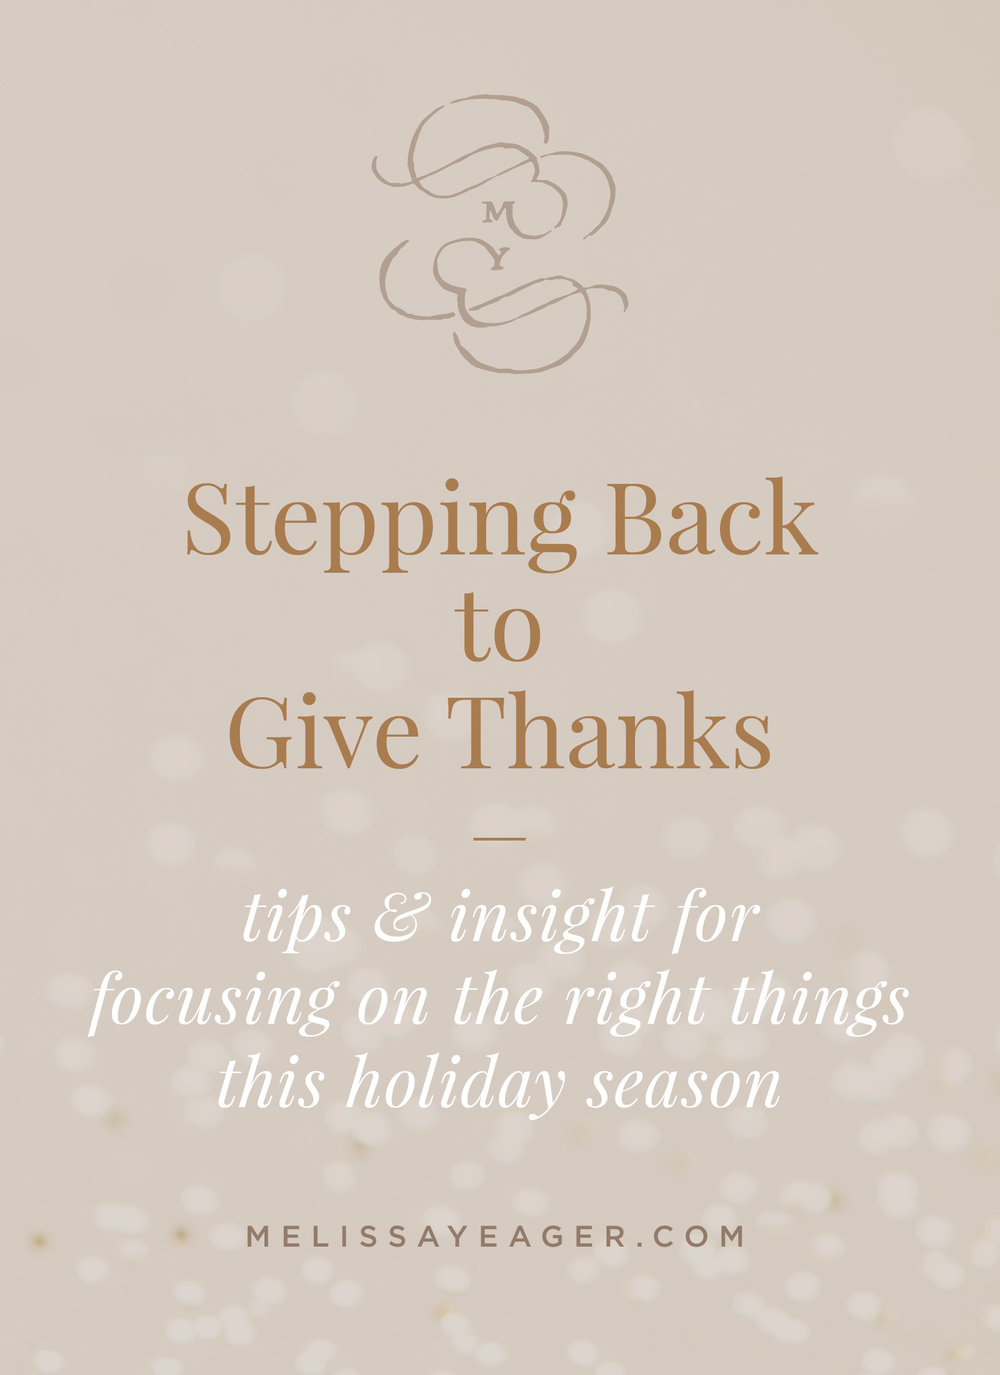 Stepping Back to Give Thanks - tips & insight for focusing on the right things this holiday season